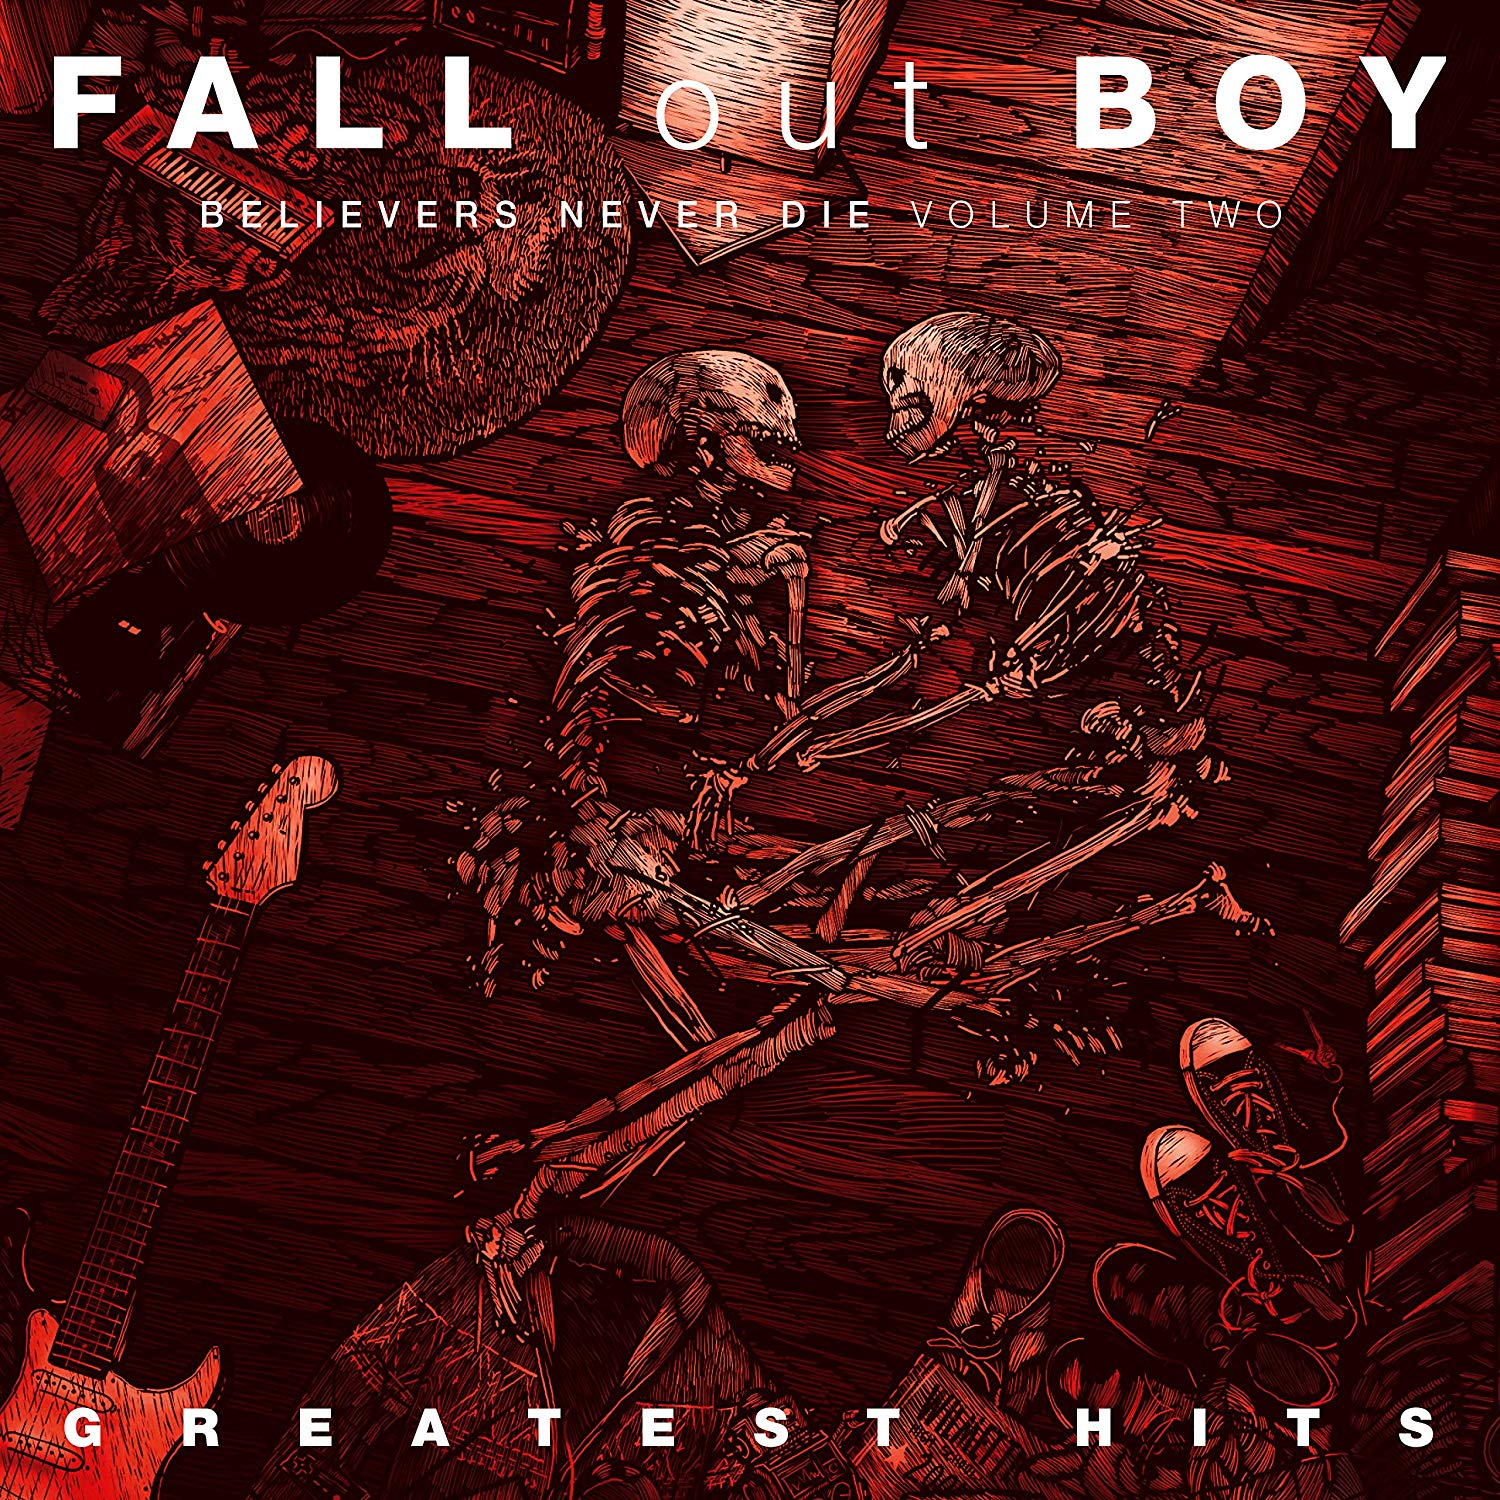 Fall Out Boy - Believers Never Die Vol. 2